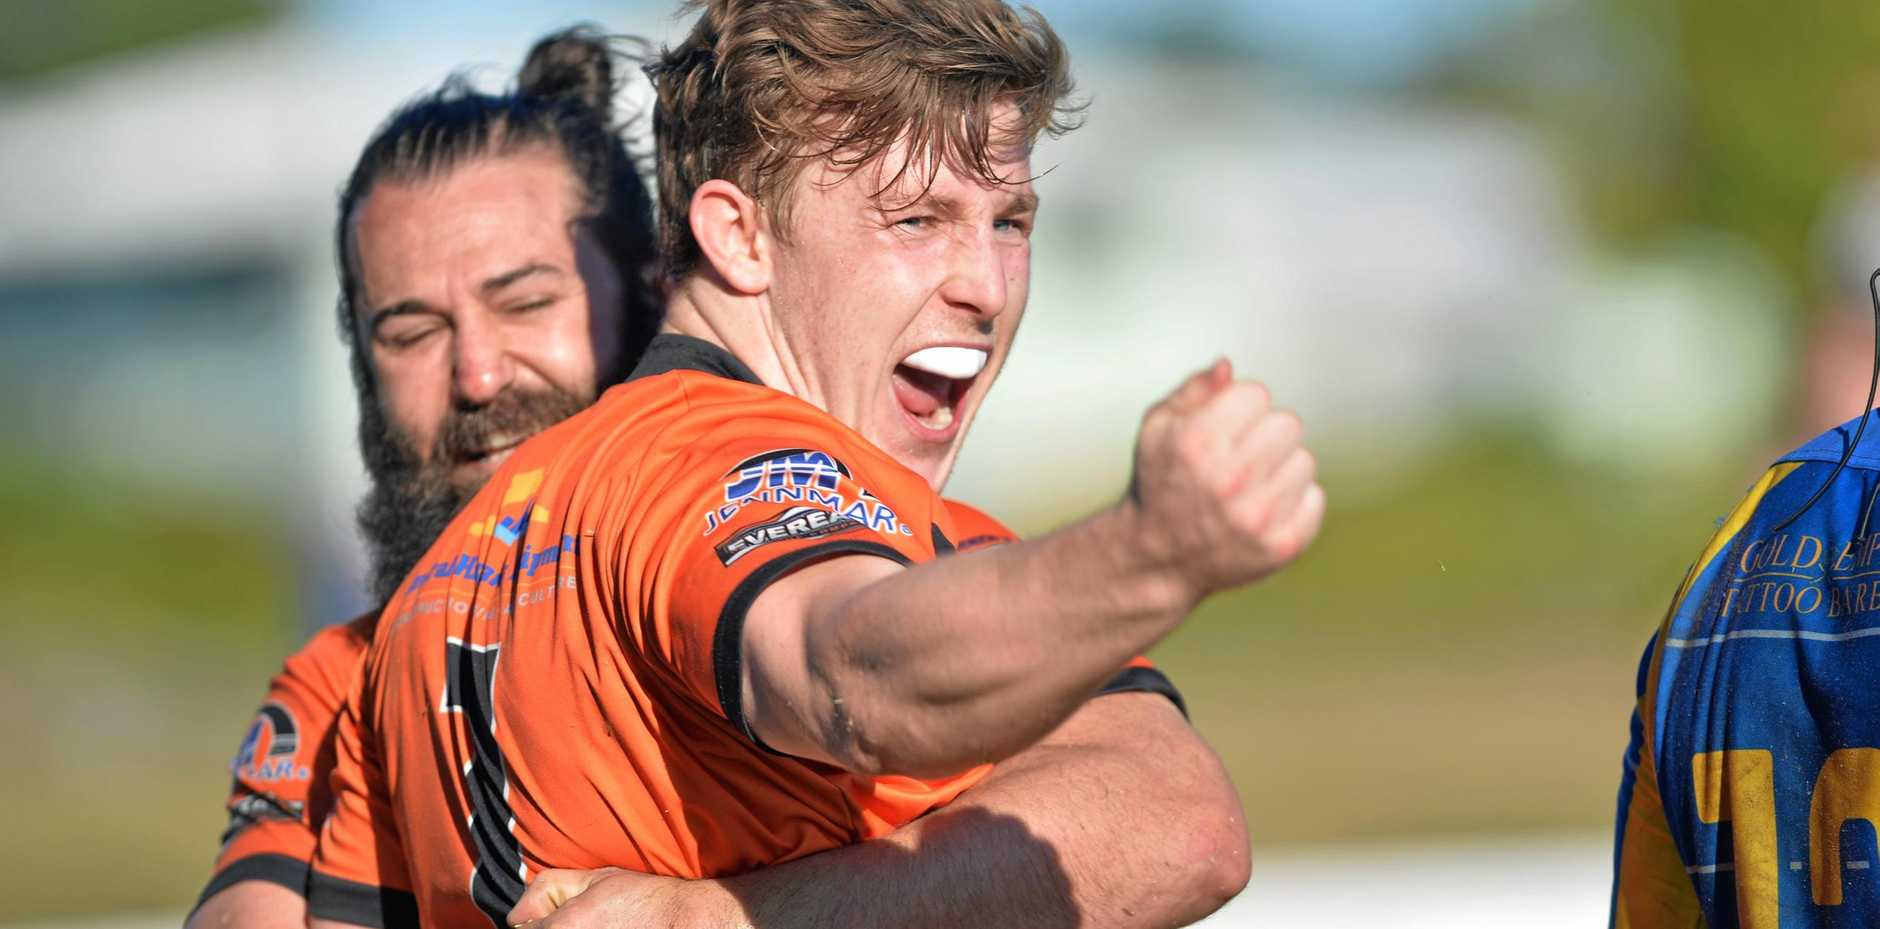 ROARING: Wests Tigers' Jack Hickson celebrates a try against Souths Sharks in the RLM A-Grade semifinal.